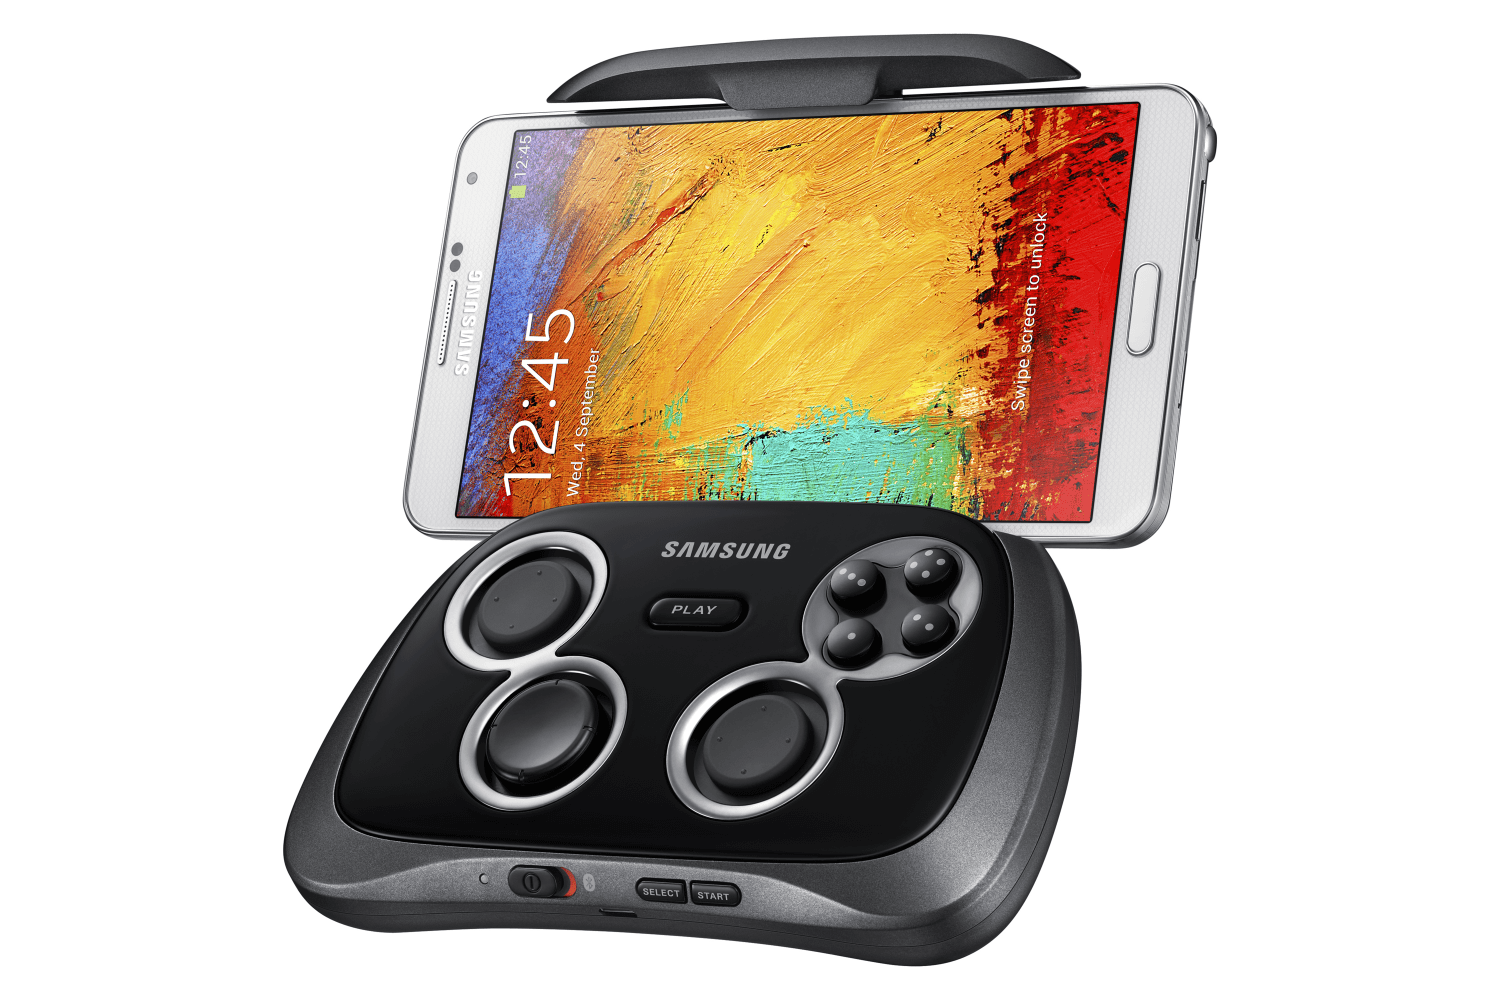 Samsung Game Pad on Its Way to the Europeans